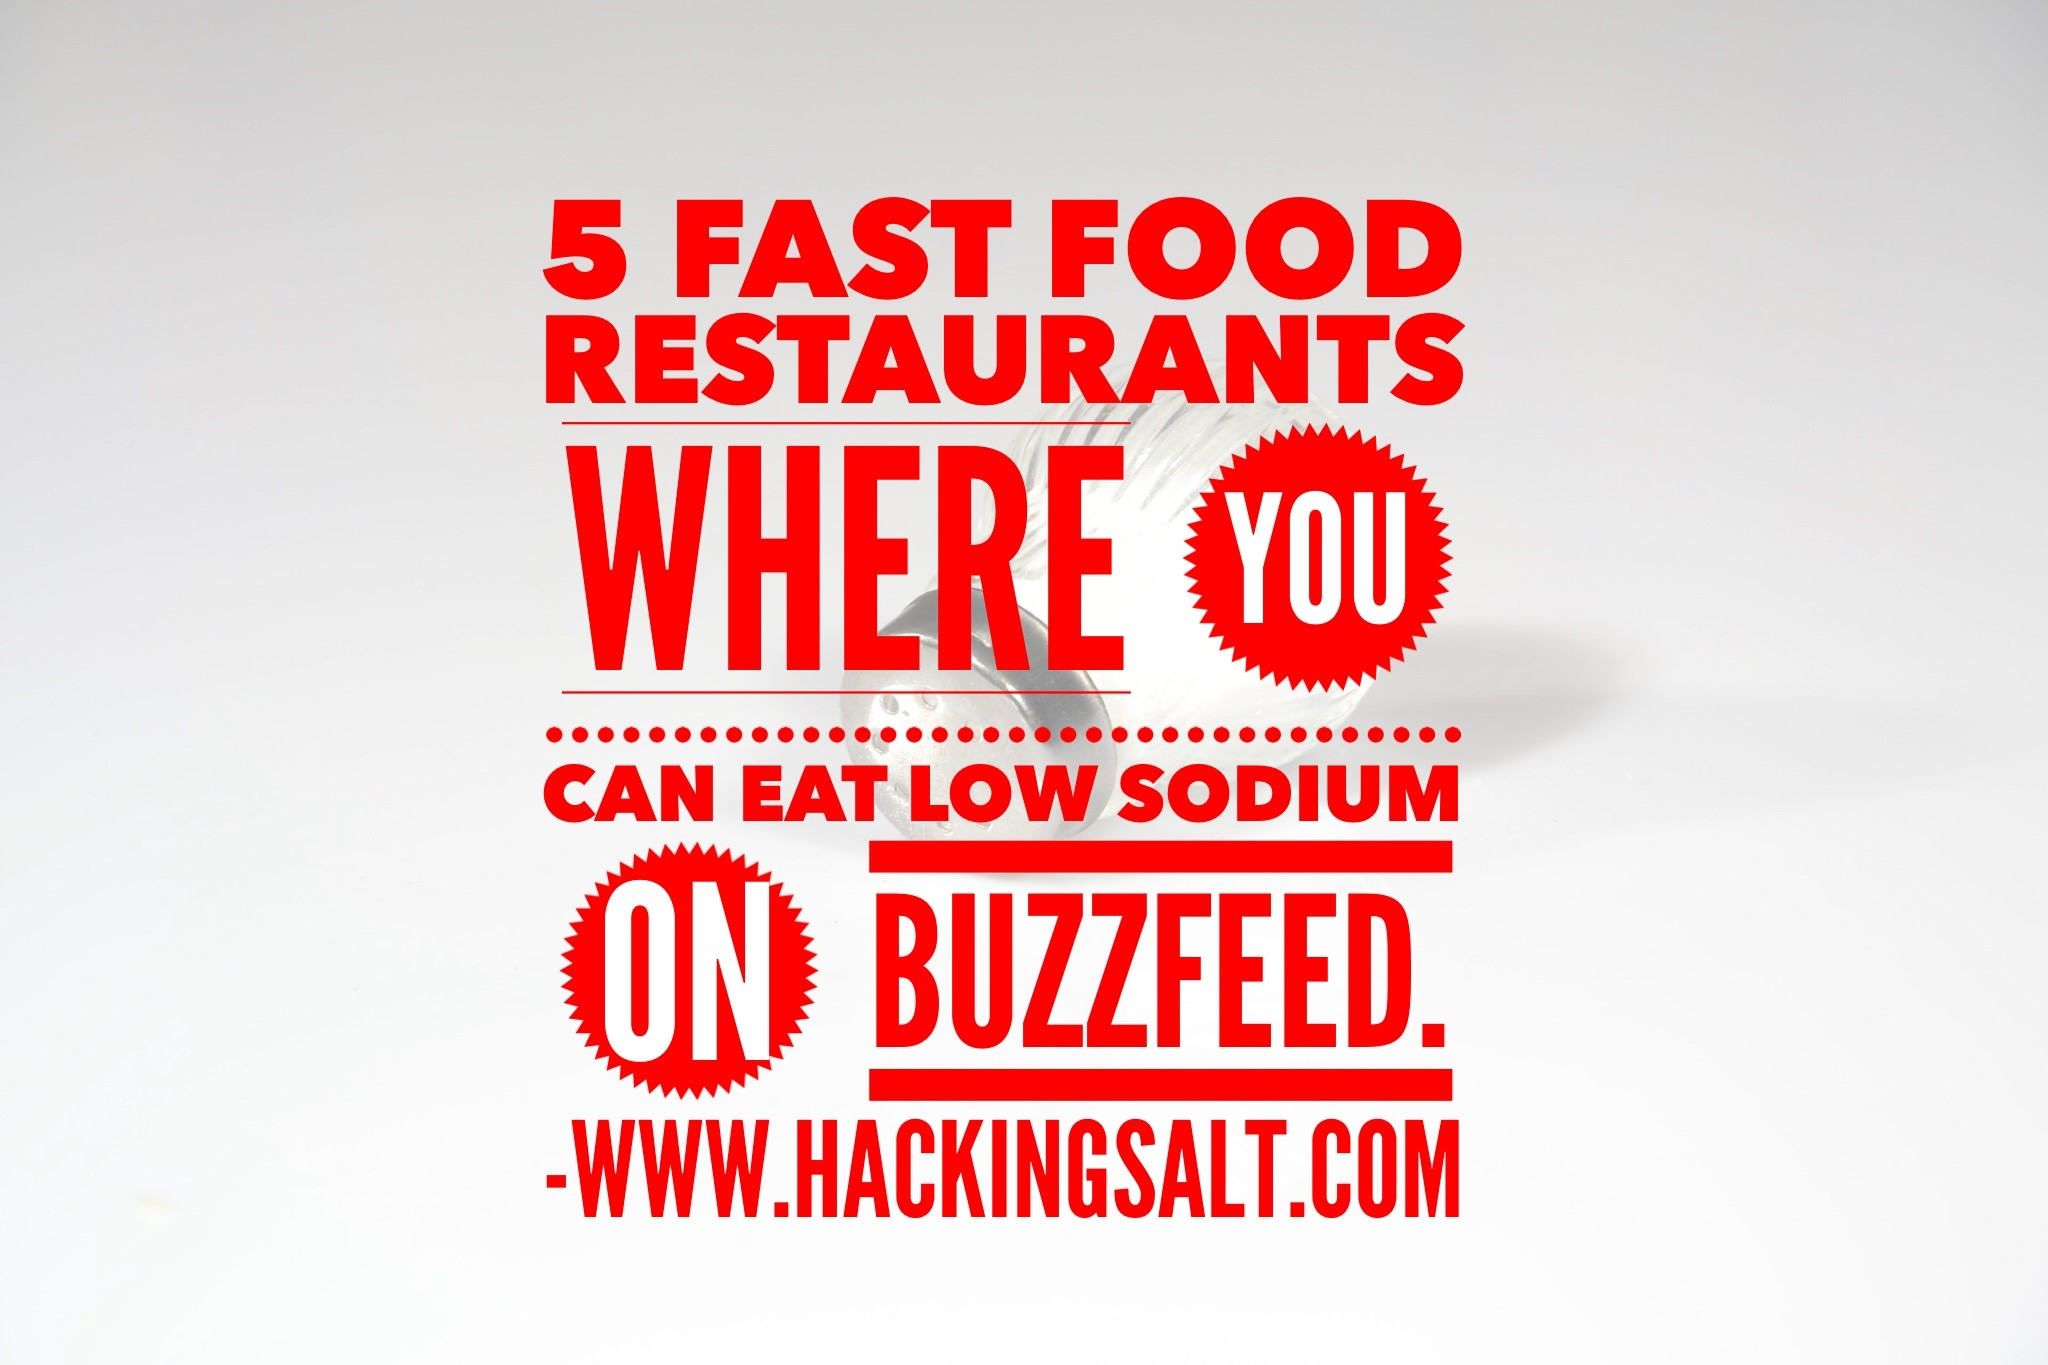 5 Fast Food Restaurants Where You Can Eat Low Sodium On